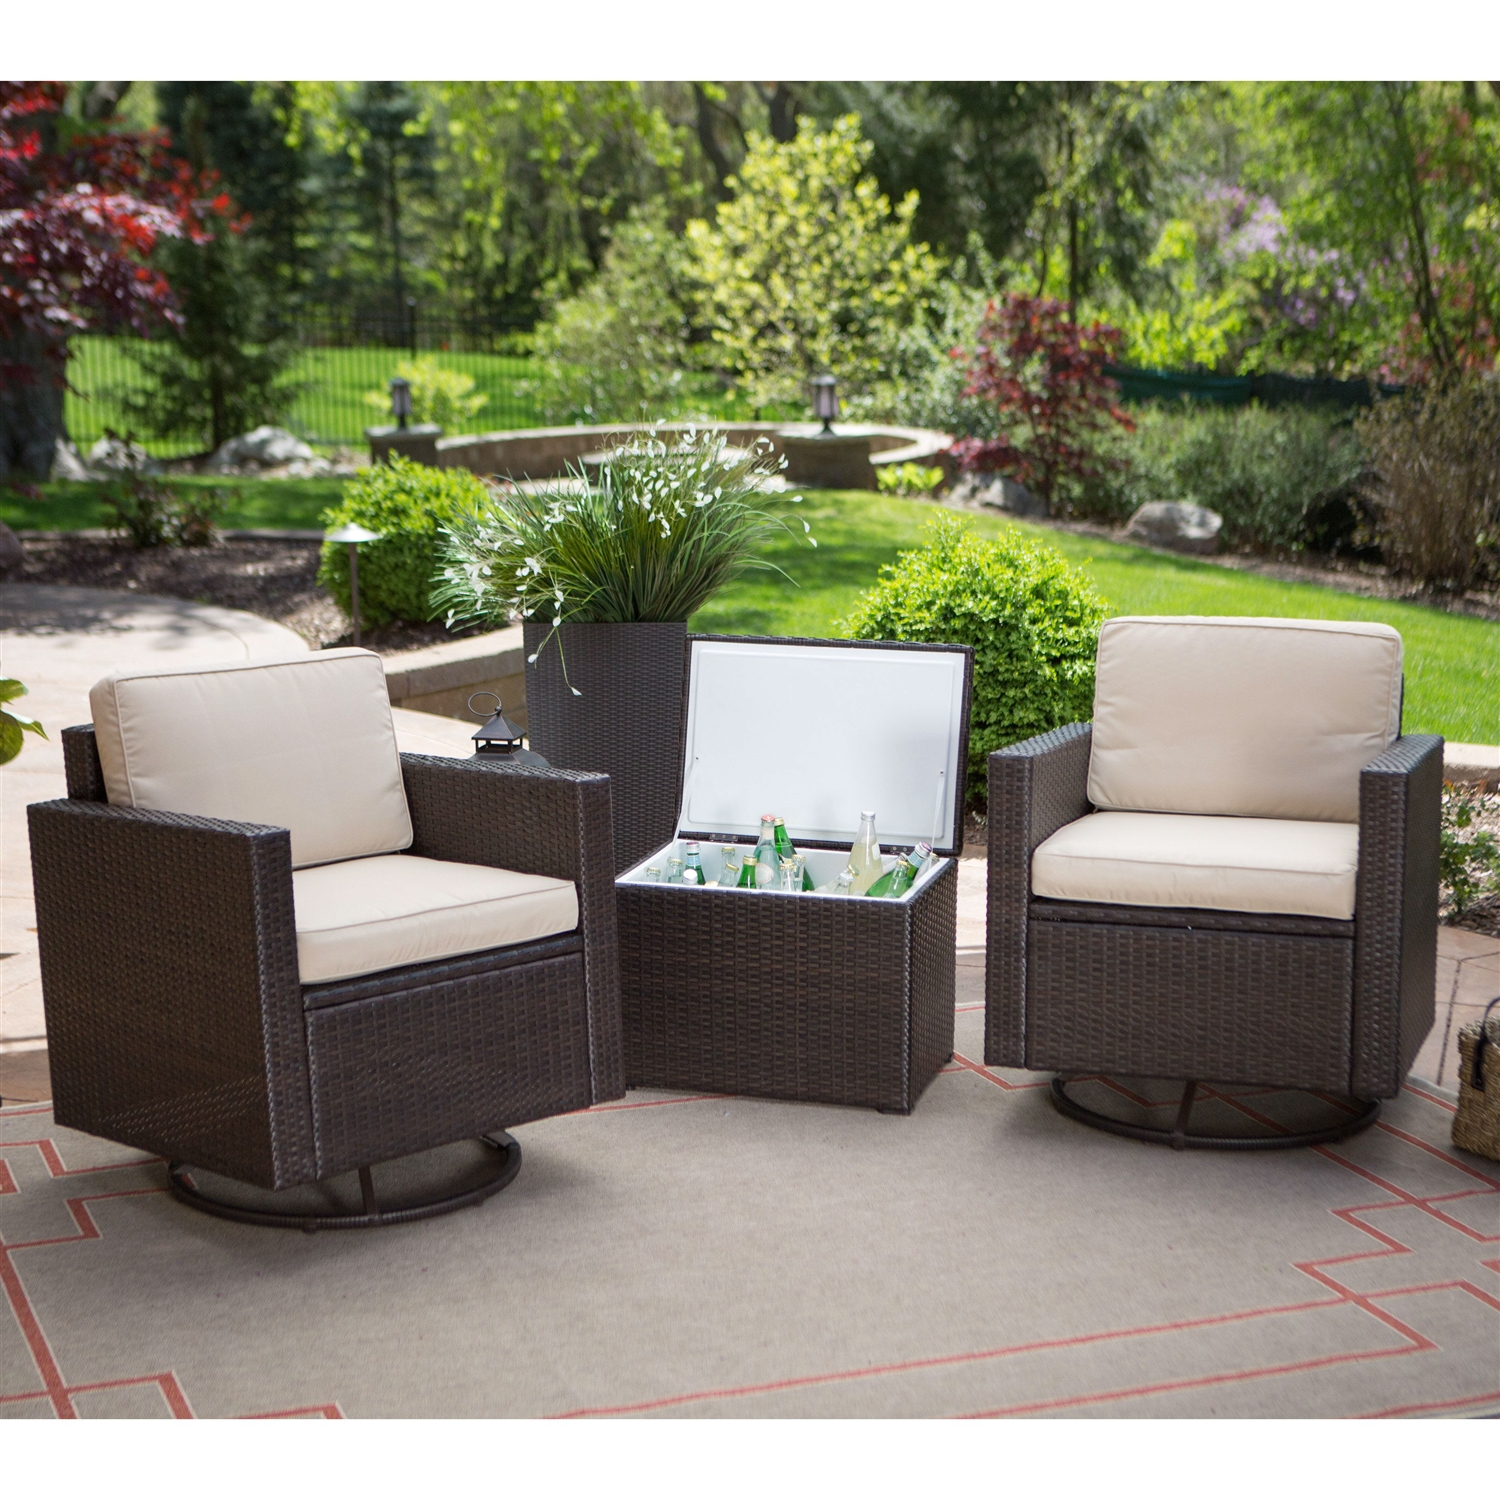 Outdoor wicker resin 3 piece patio furniture set with 2 for Chair with storage